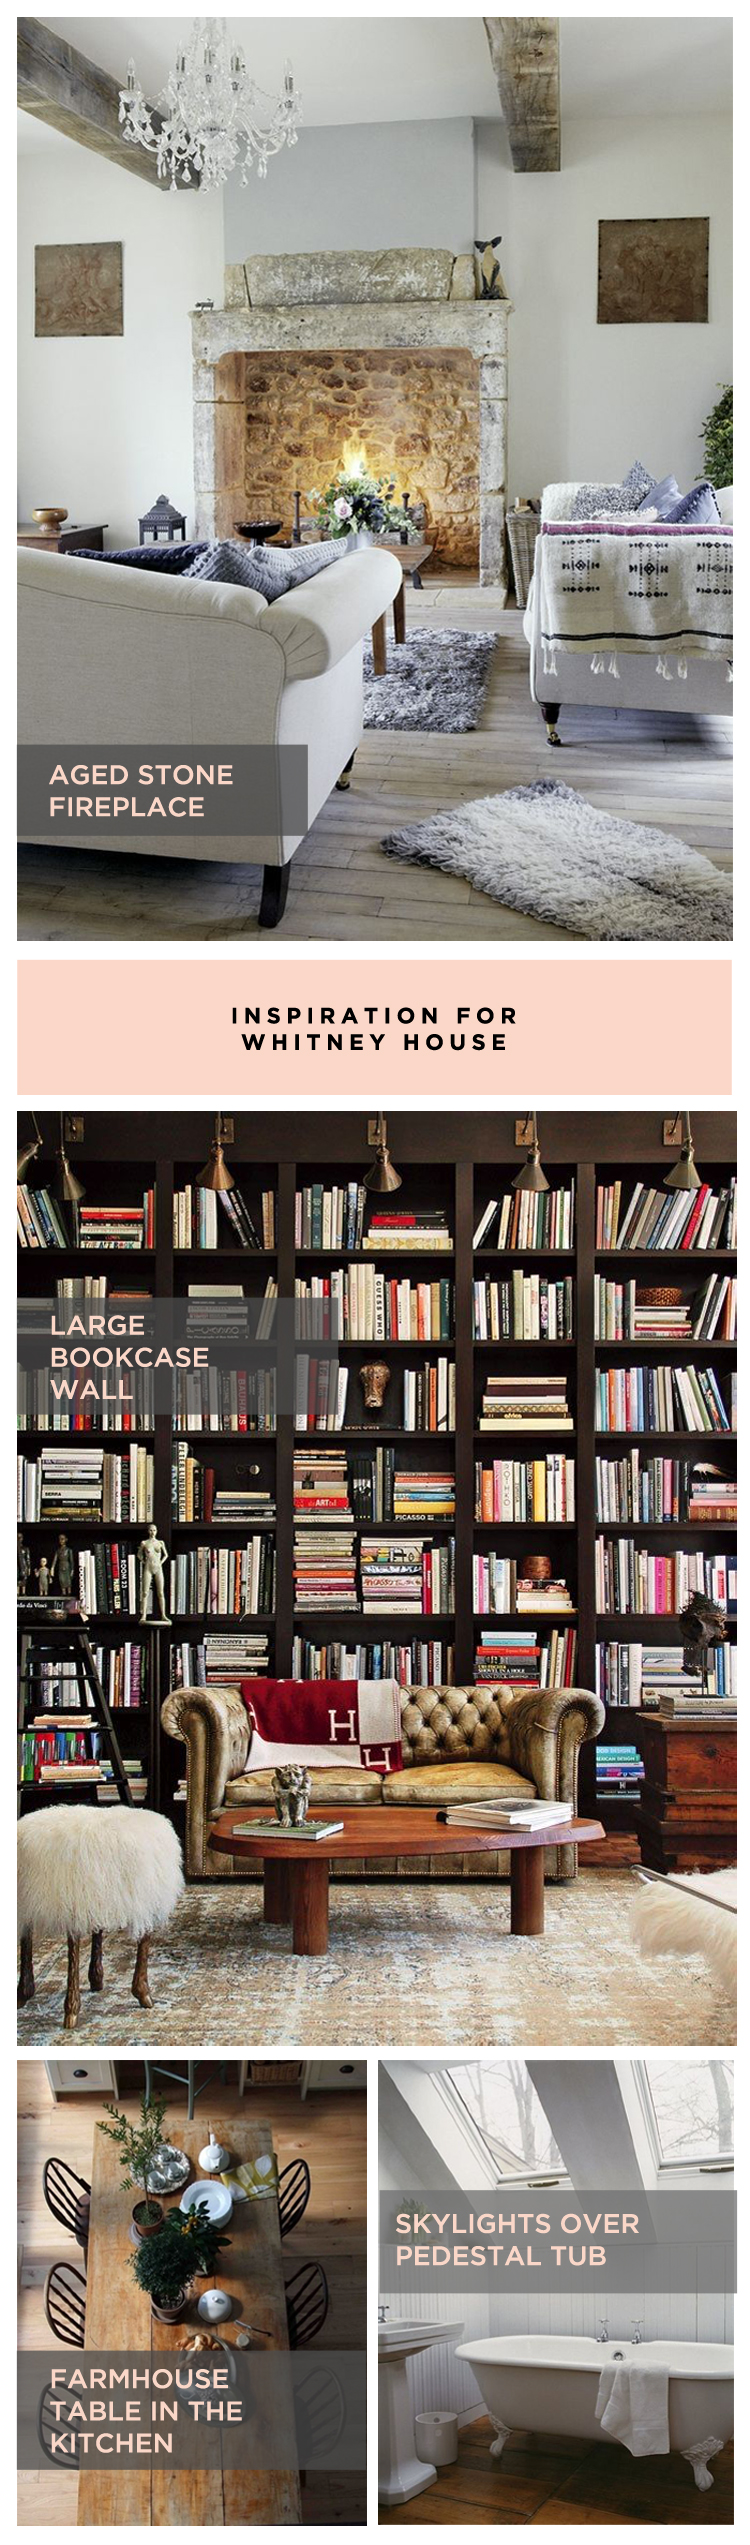 INSPIRATION FOR WHITNEY HOUSE